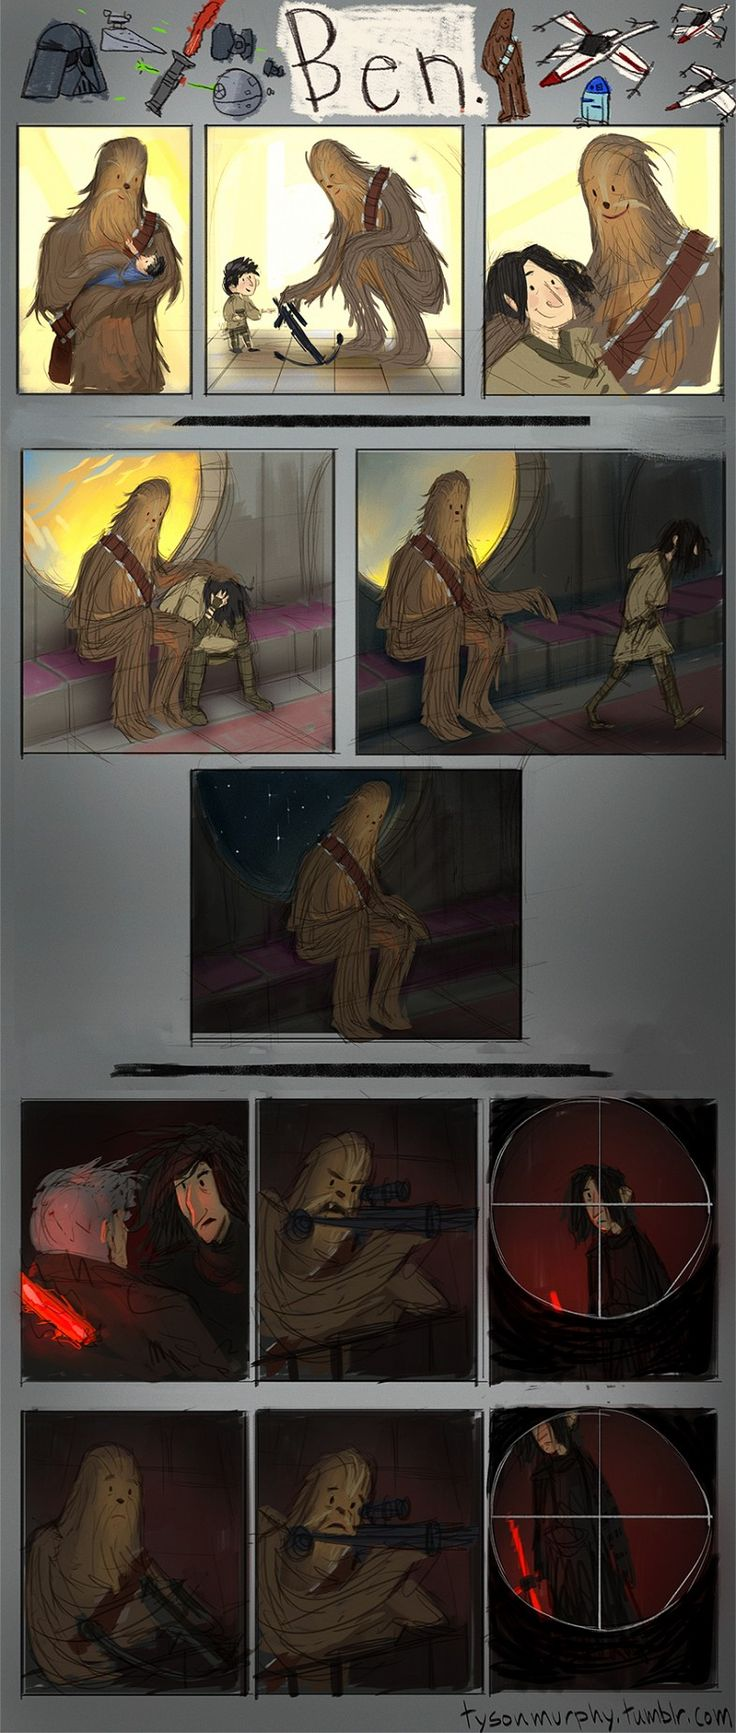 Chewie and Kylo Ren comic SR Pick: Star Wars 7 Fan Comic   Chewbacca & Kylo Ren (Right in the feels!)